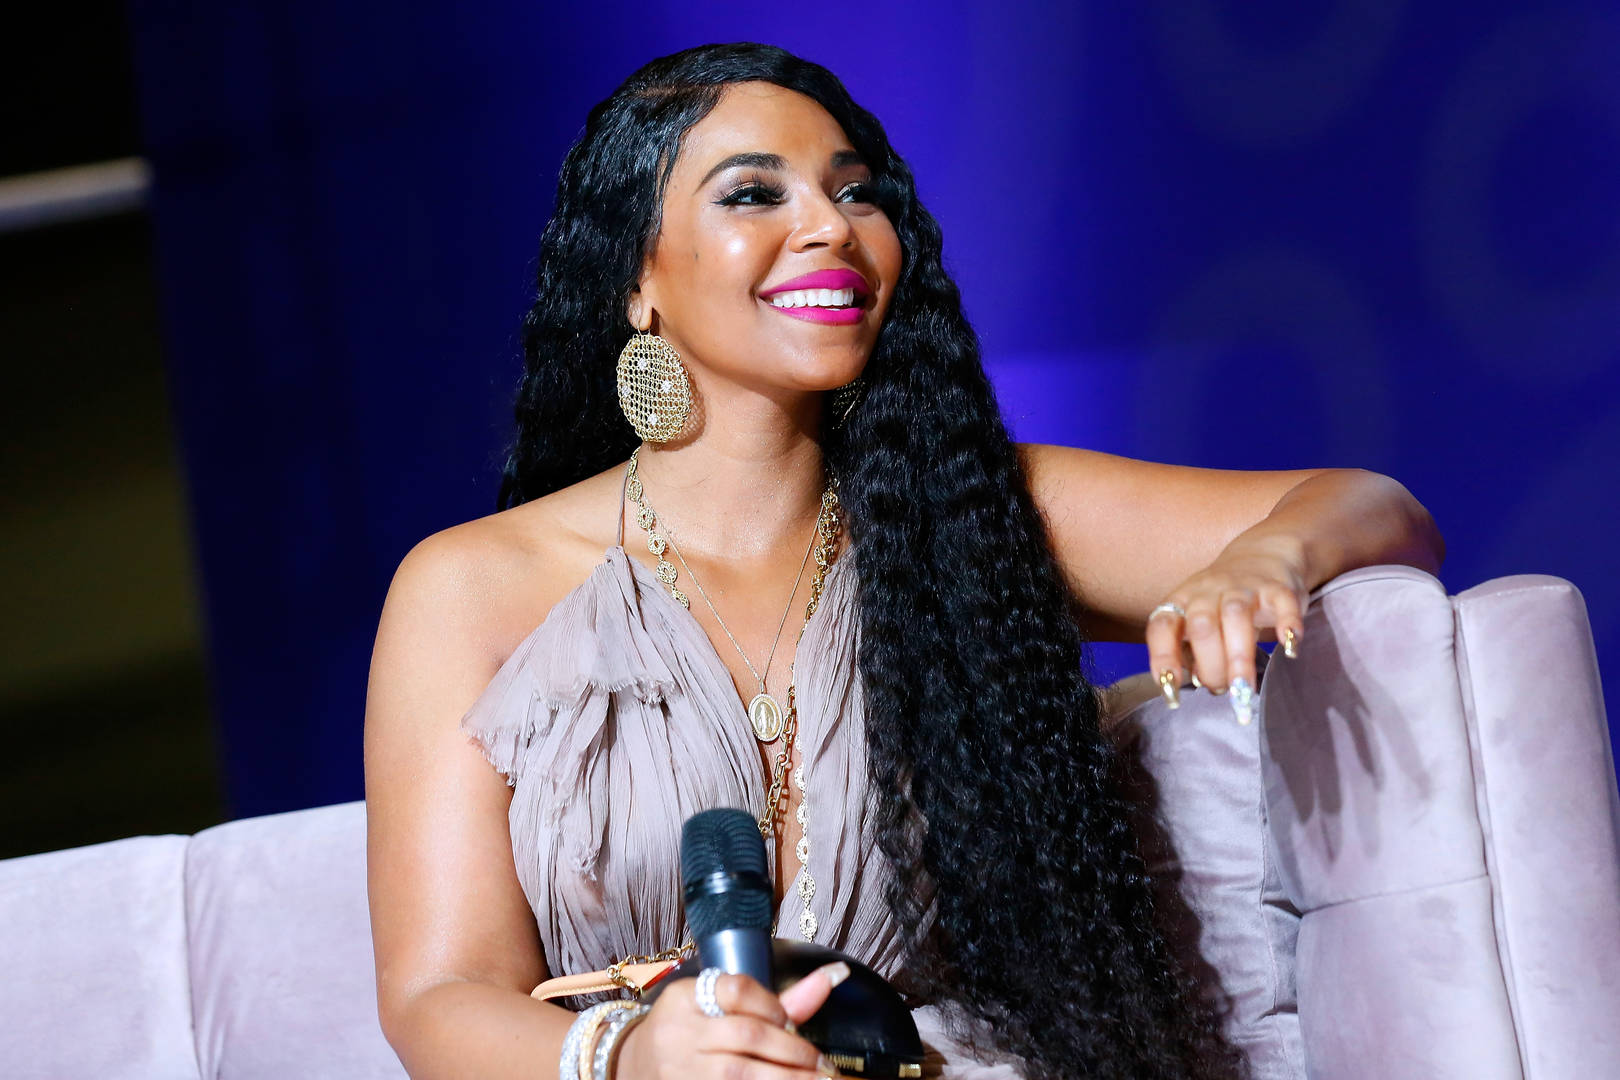 Ashanti Reveals That She Has Not Seen Nelly Since Their Breakup